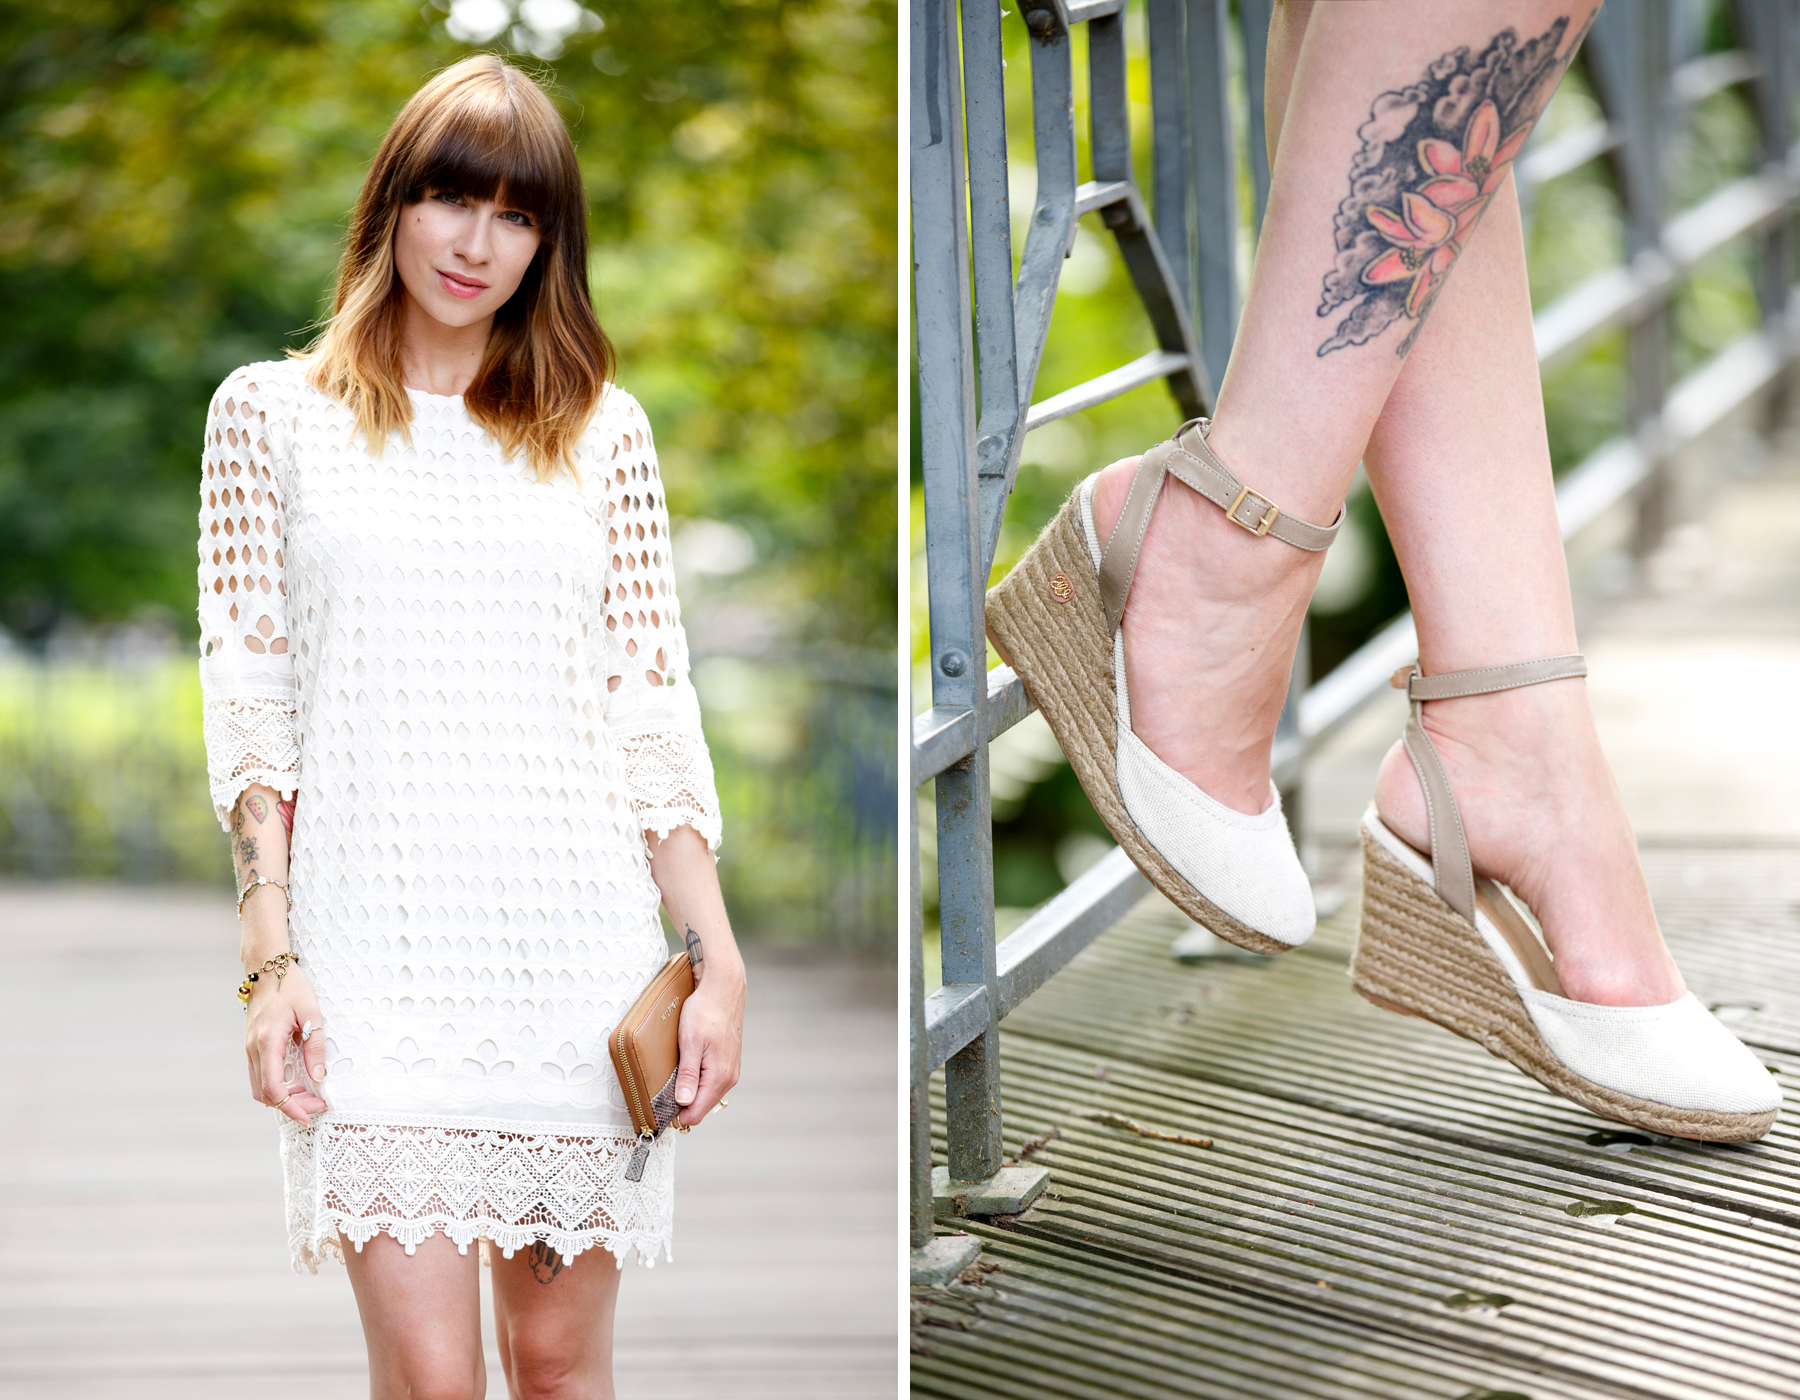 dress-for-less outfit styling white sommerkleid summer look crochet wrangler hilfiger fashion blog germany düsseldorf ricarda schernus cats & dogs 4